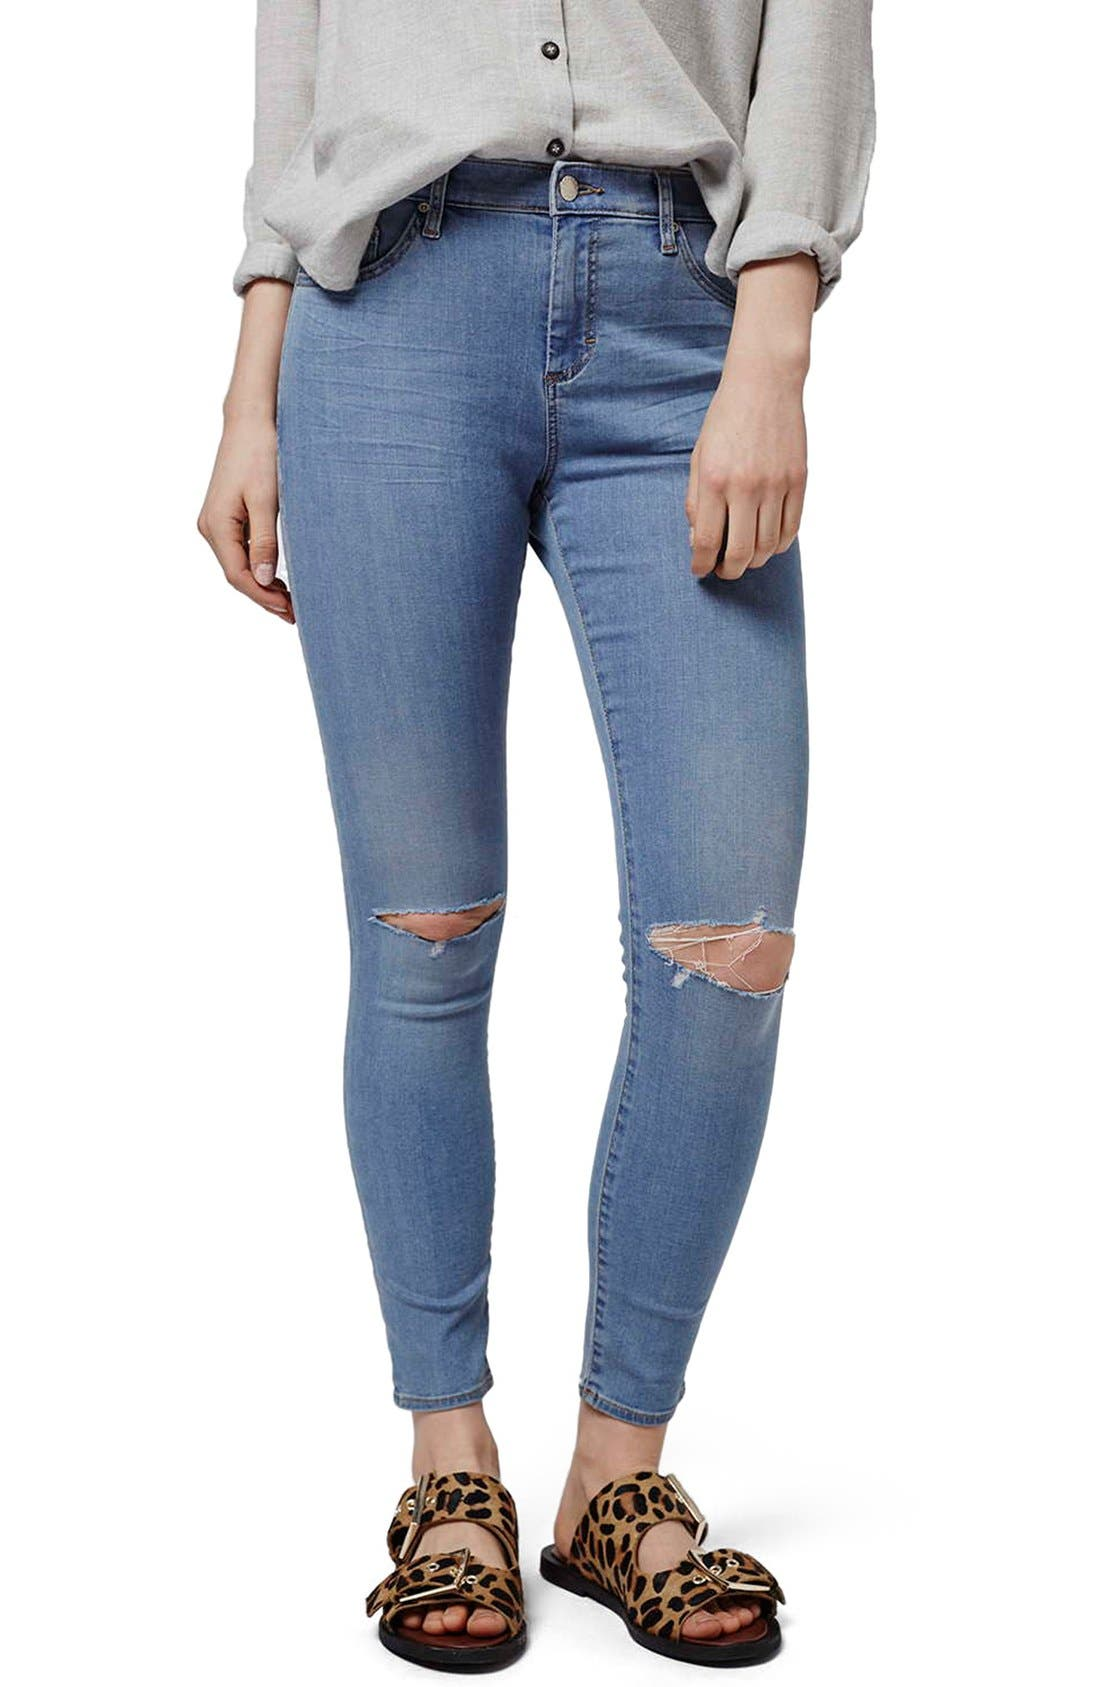 Alternate Image 1 Selected - Topshop 'Leigh' Ankle Skinny Jeans (Petite)